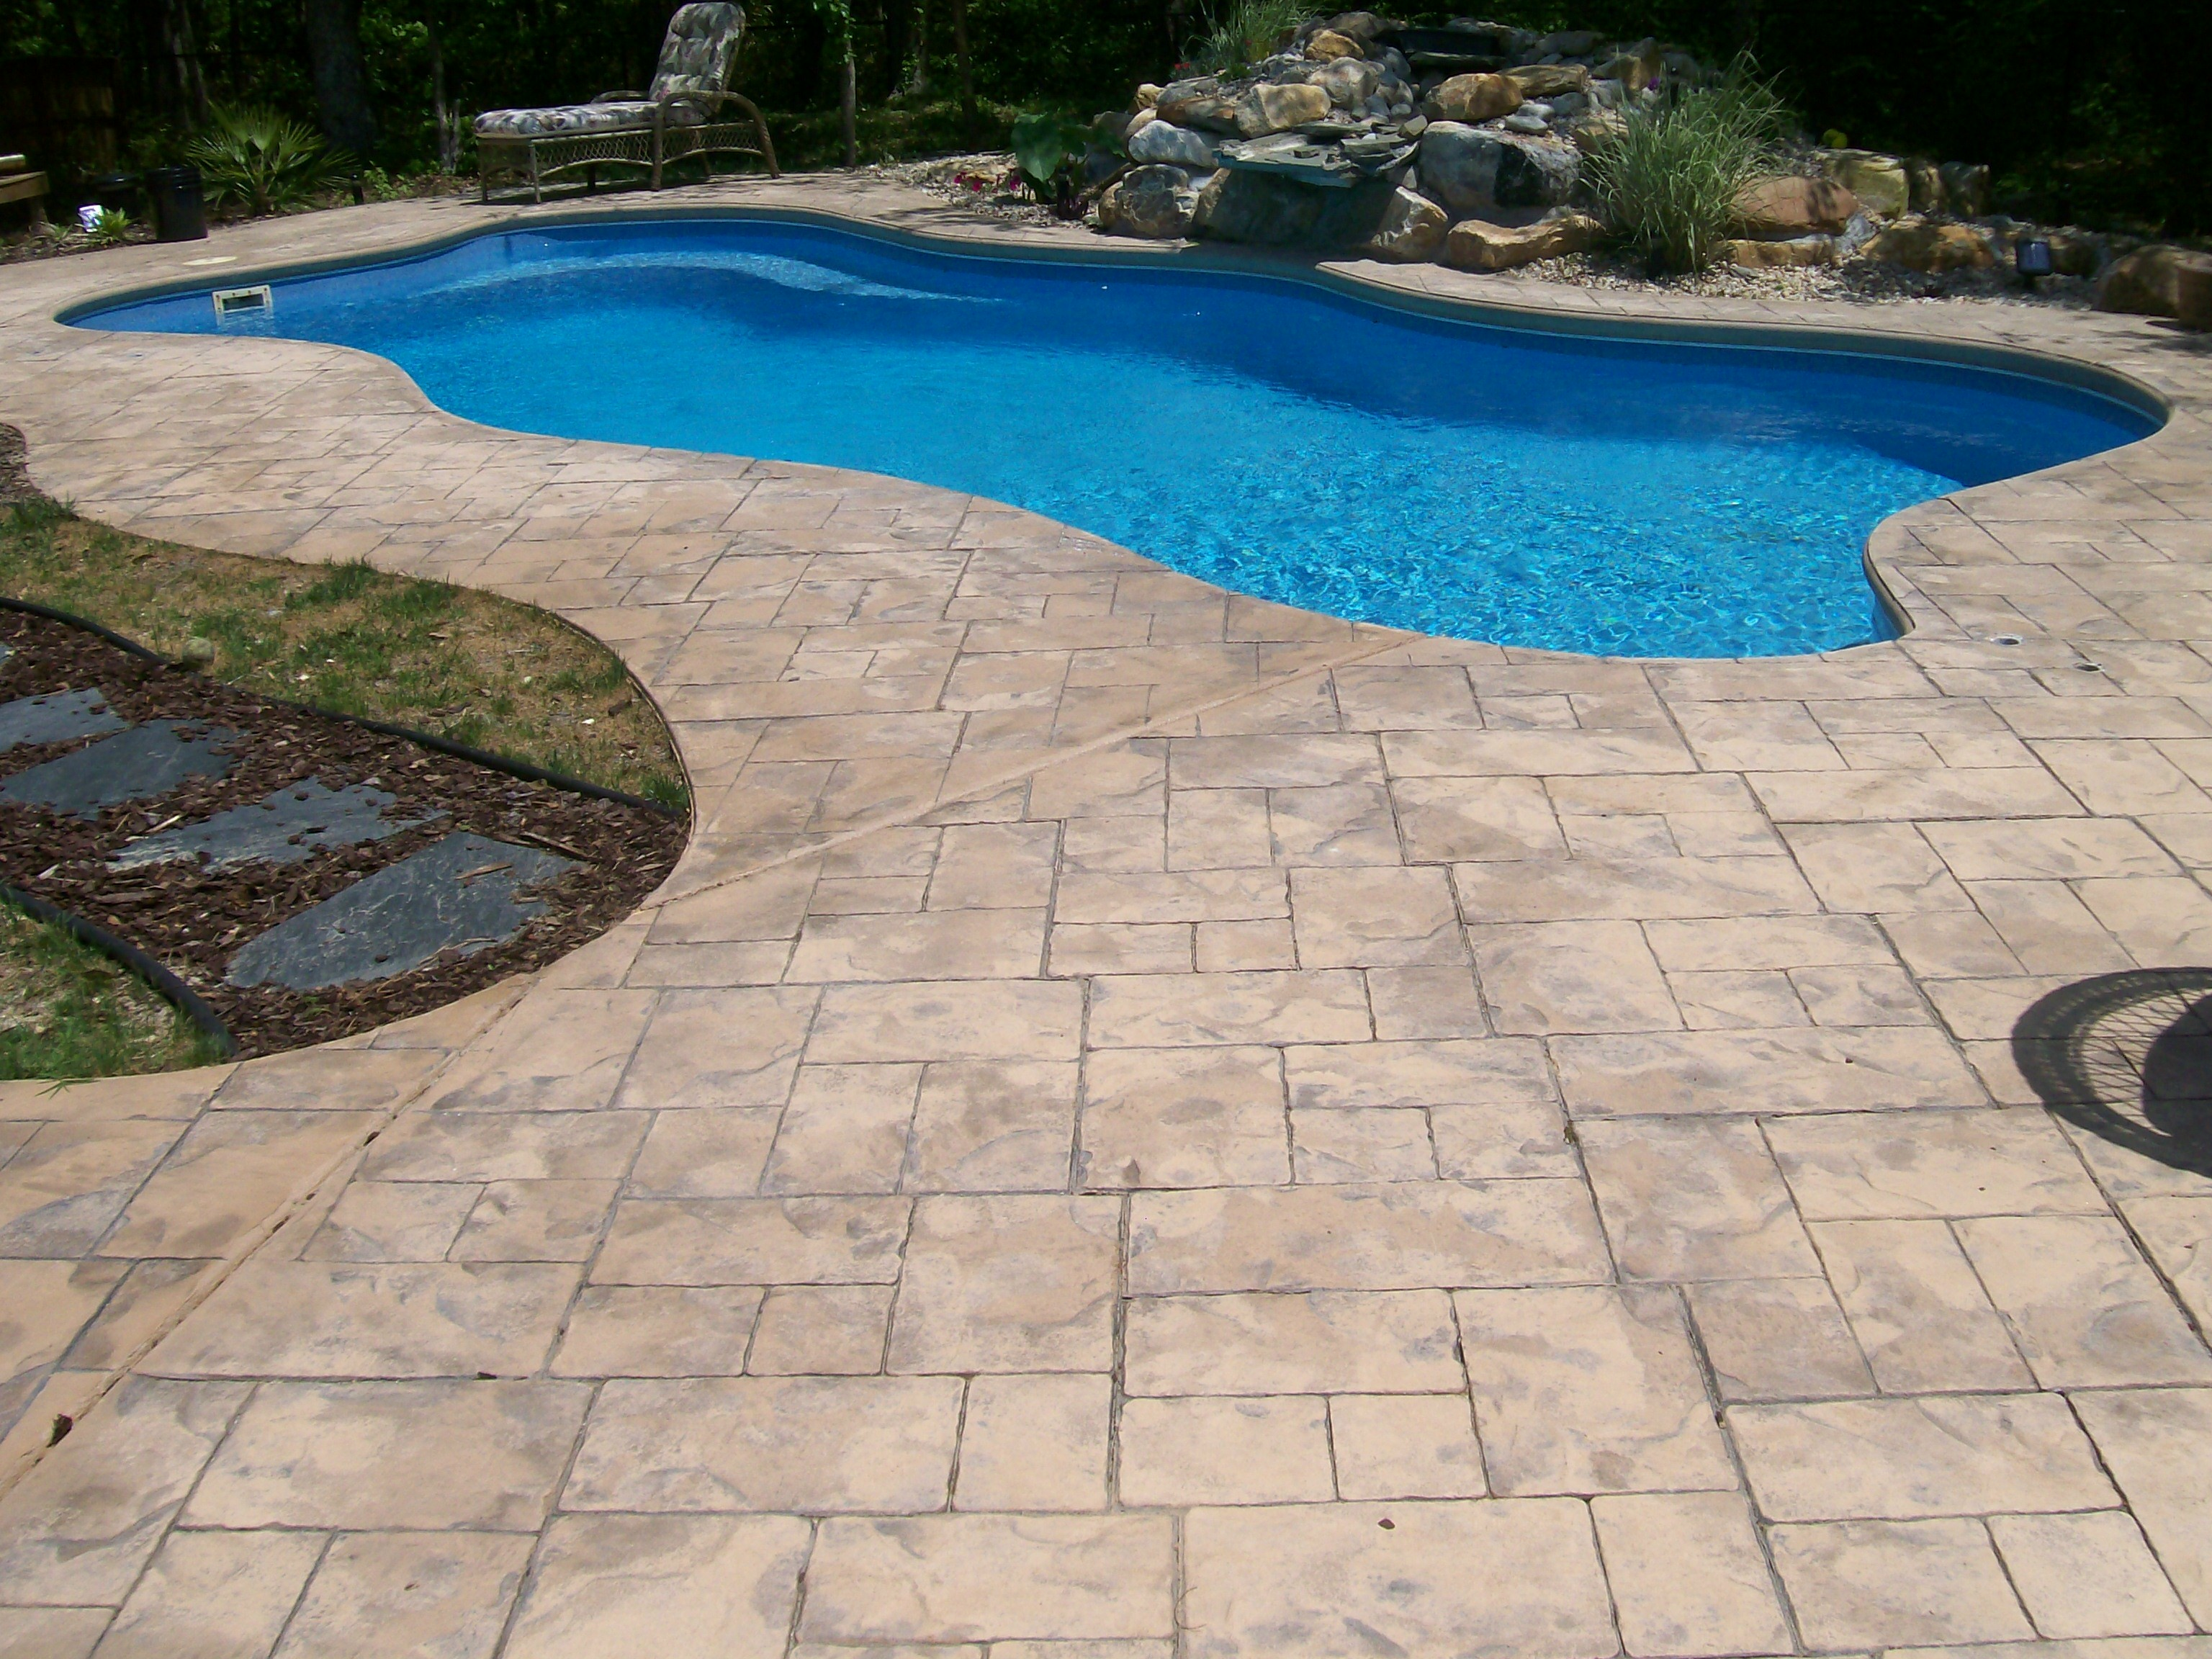 Stamped Concrete Around Pool Delectable Concrete Stamped Border Driveway With Broom Finish Interior.